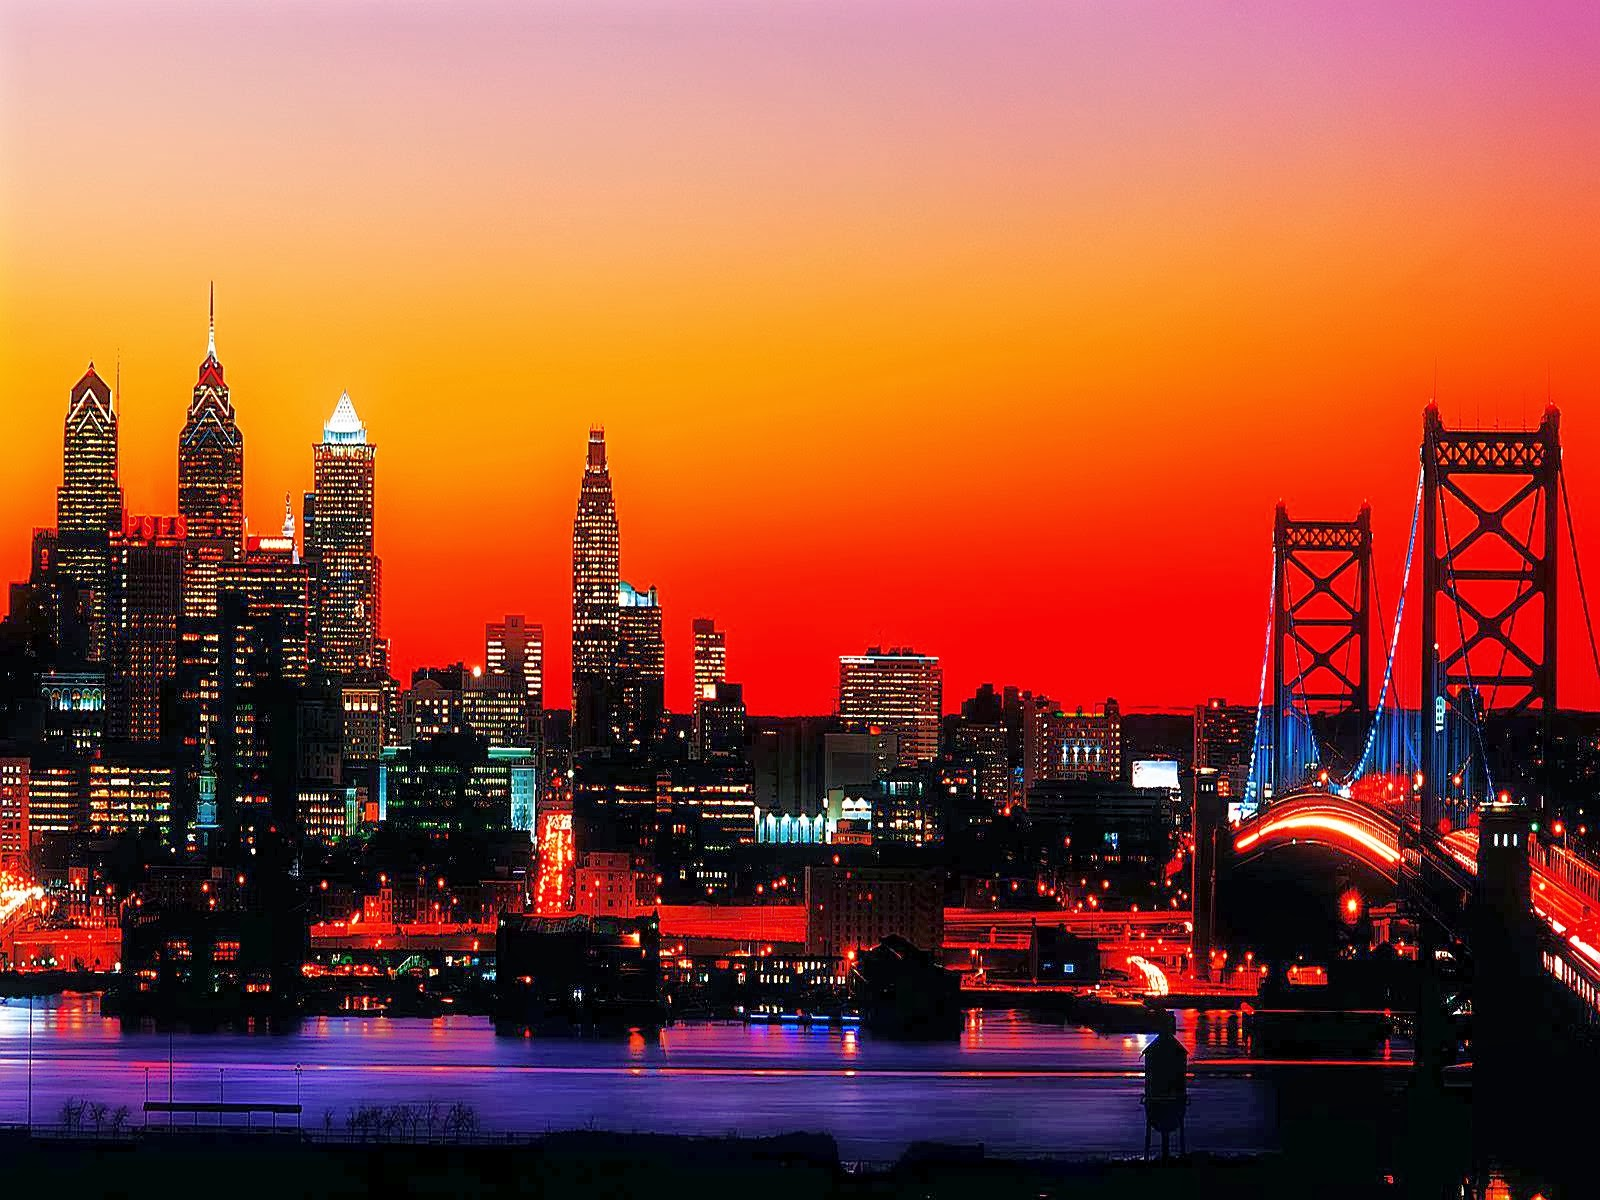 philadelphia magical city pennsylvania united states hd desktop